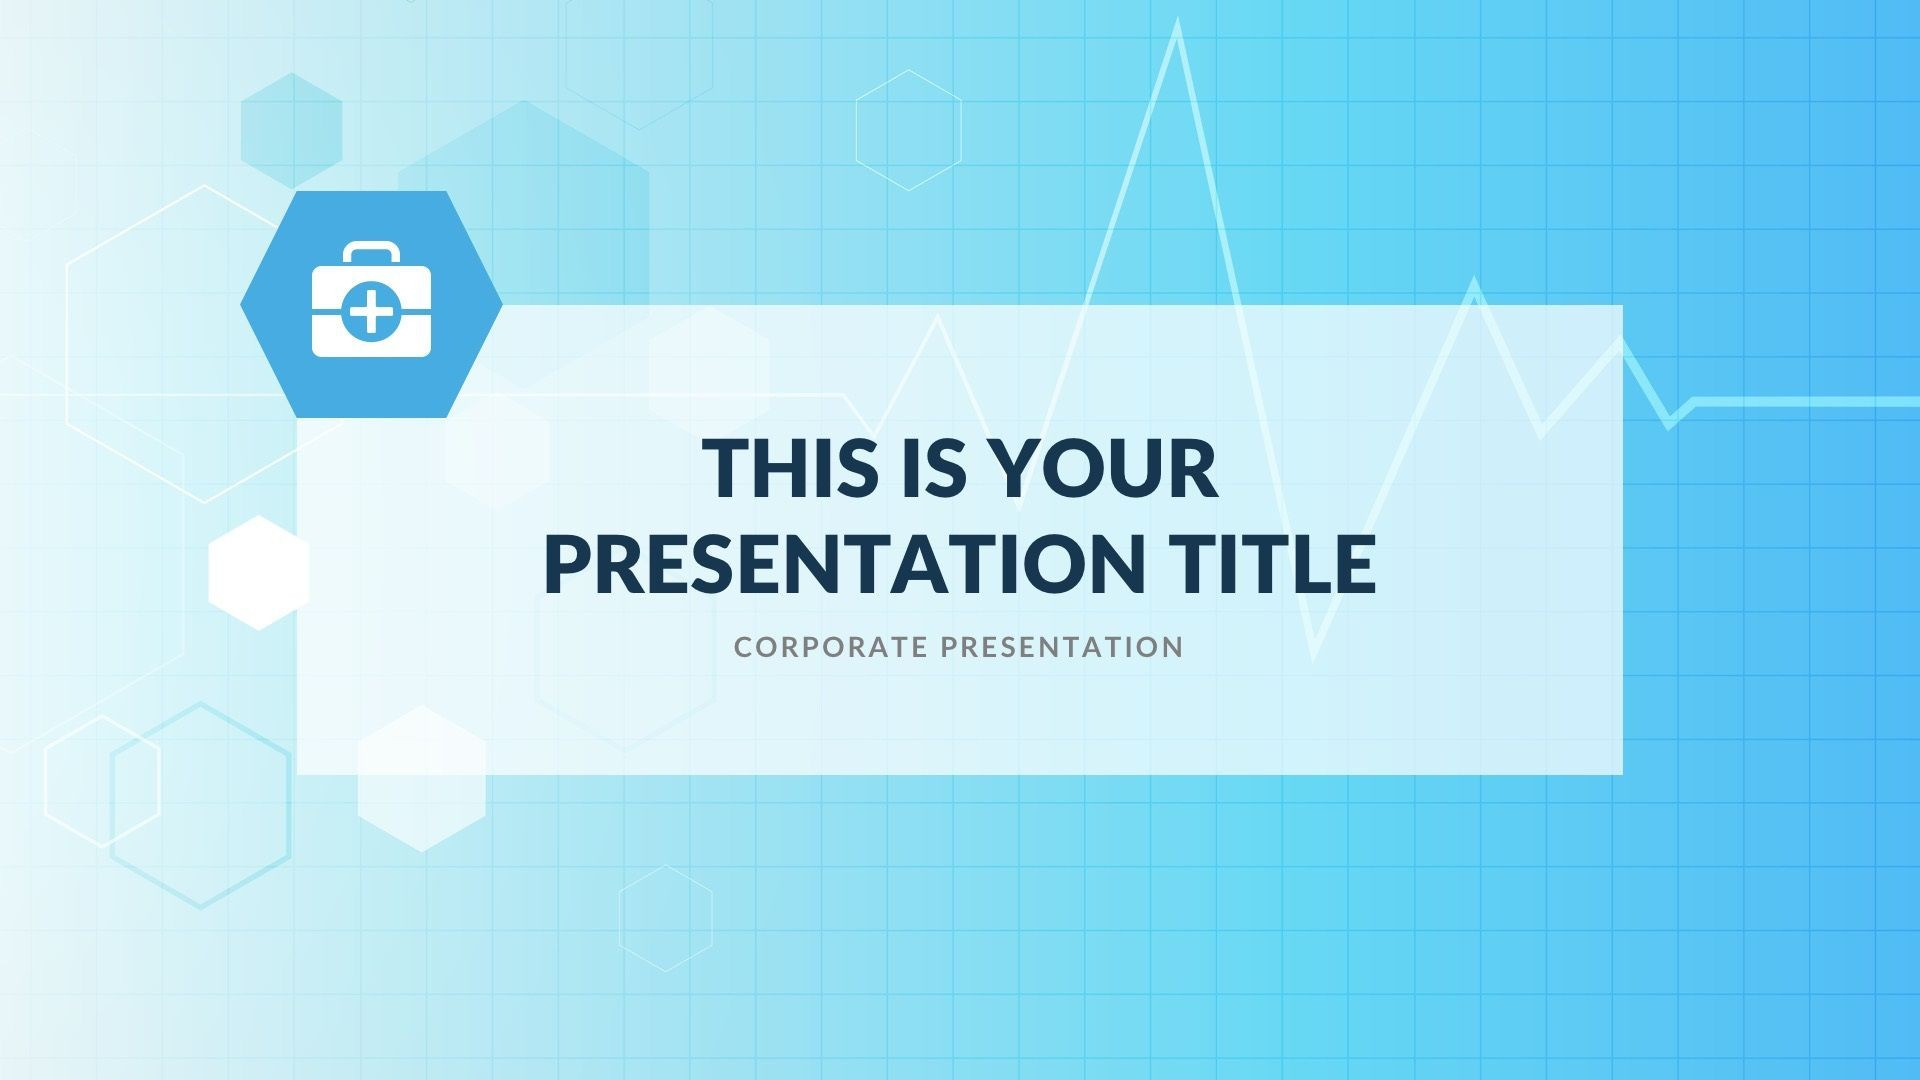 000 Incredible Powerpoint Presentation Template Free Download Medical Picture  Animated1920